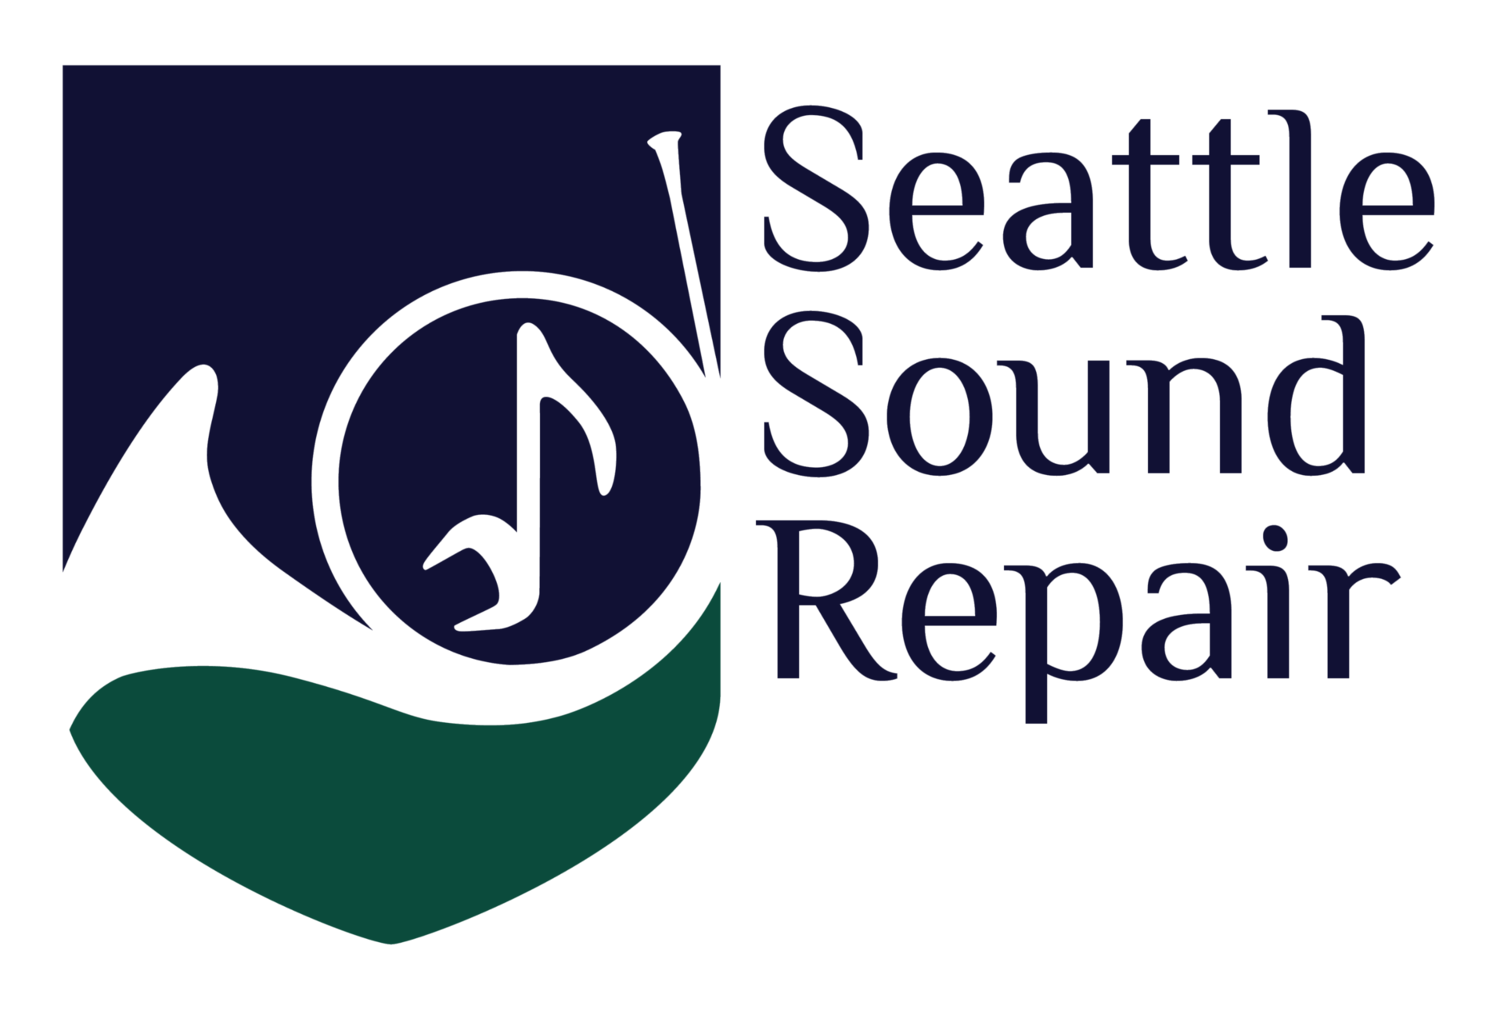 Seattle Sound Repair